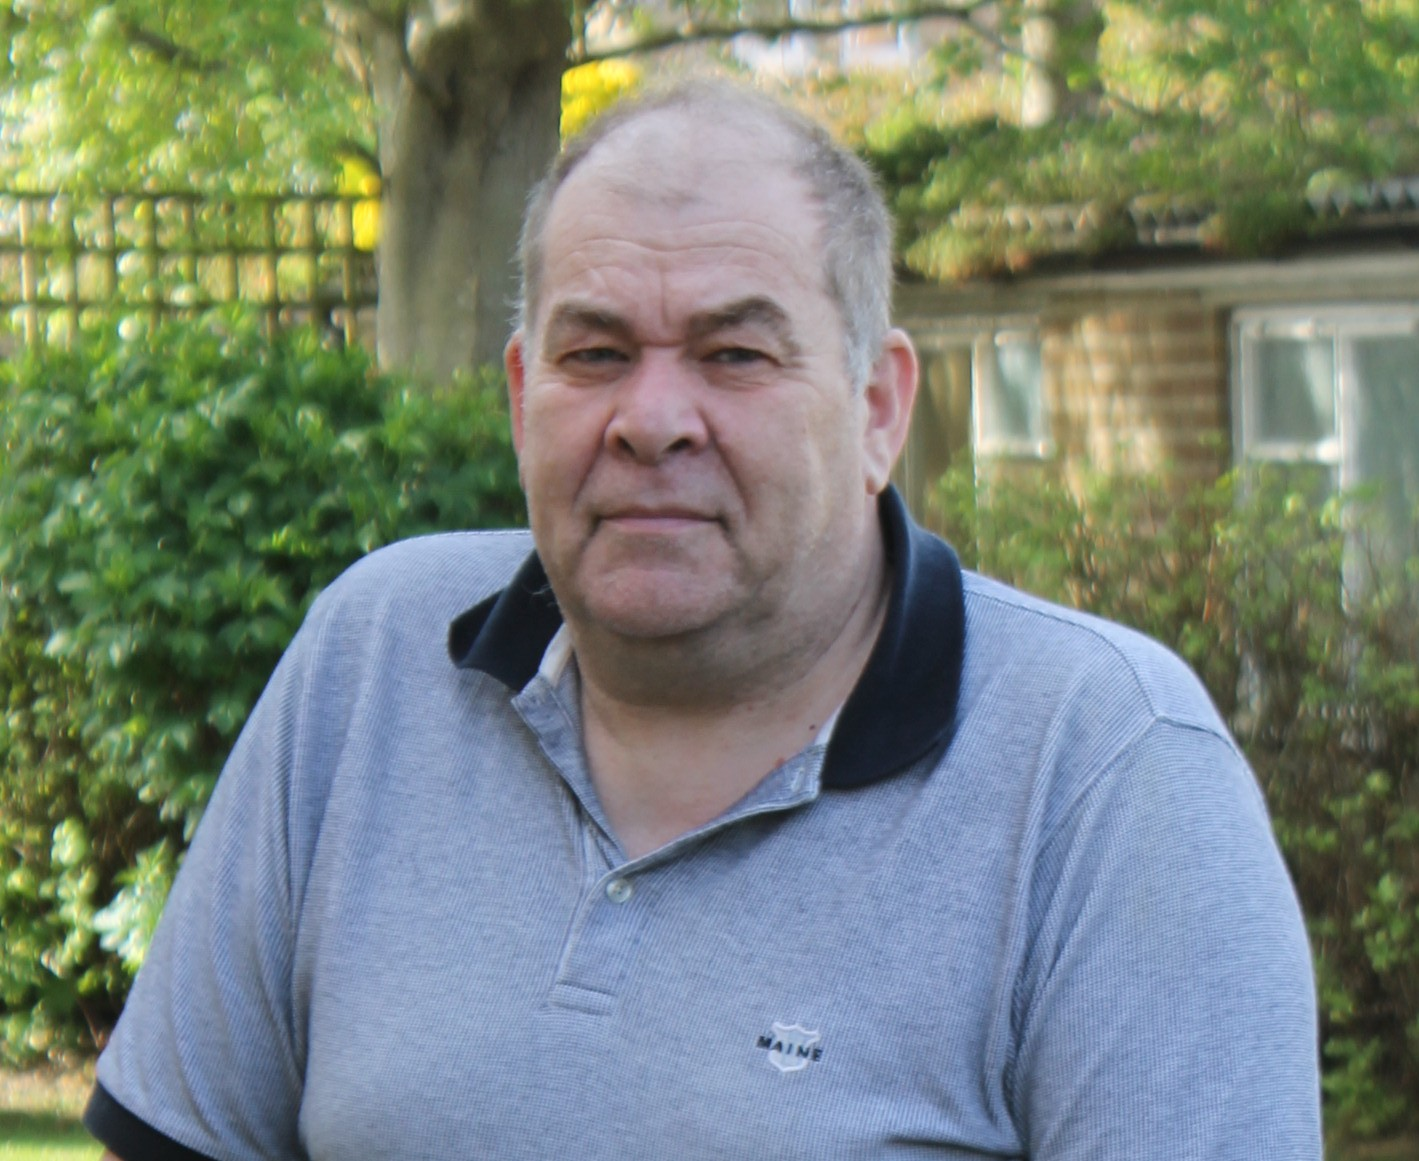 New Romney man loses out in swingeing benefits review